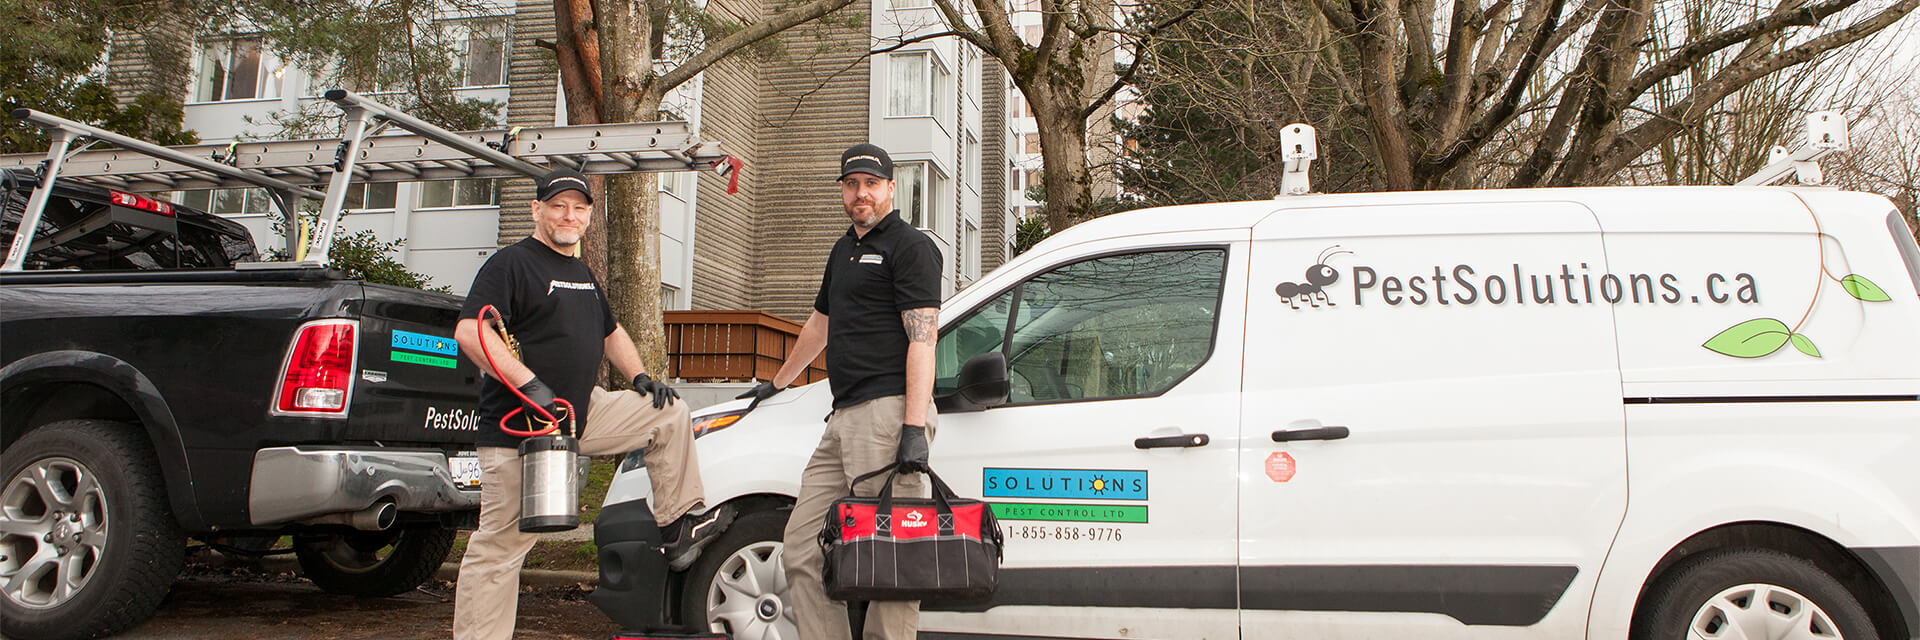 Solutions Pest Control service technicians with their trucks outside large condo building